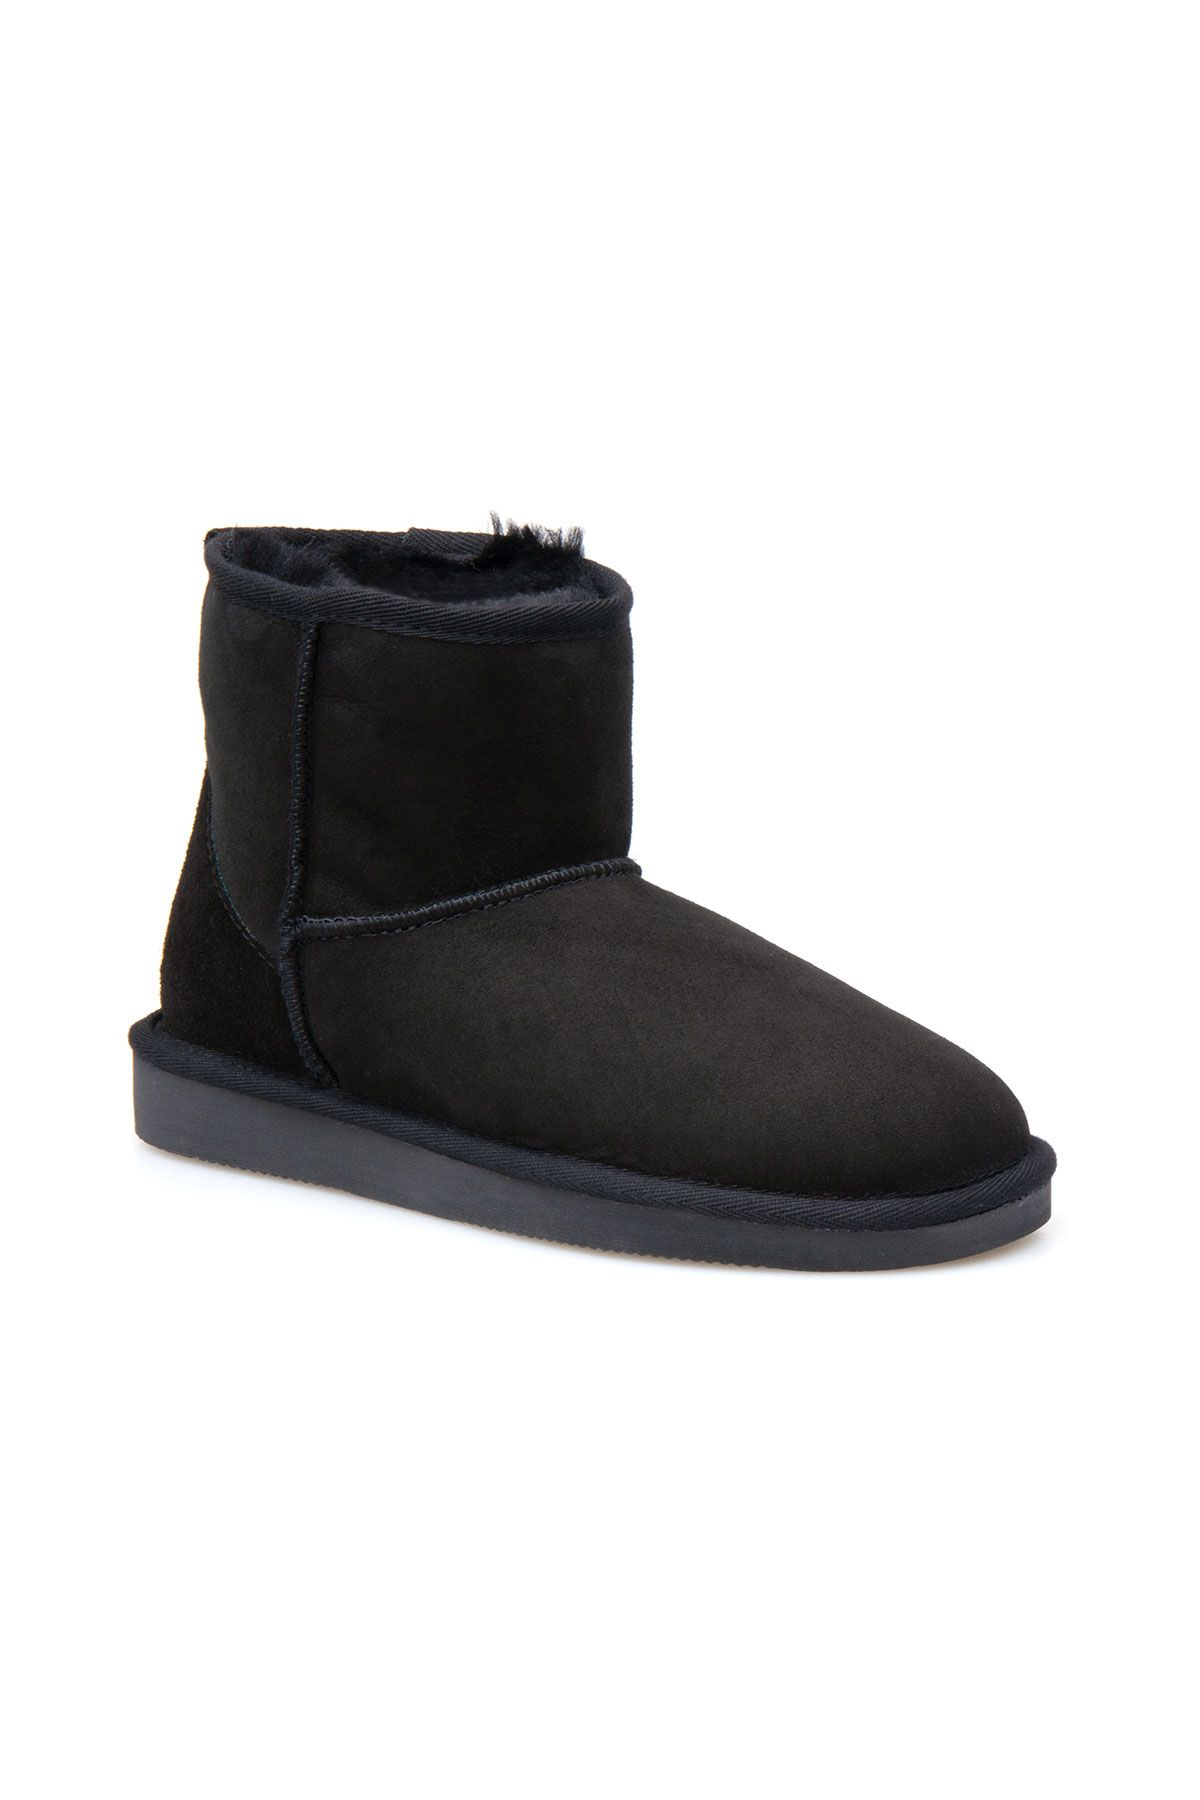 Pegia Women Boots From Genuine Suede And Sheepskin Fur Decorated With Crown Insertion Black